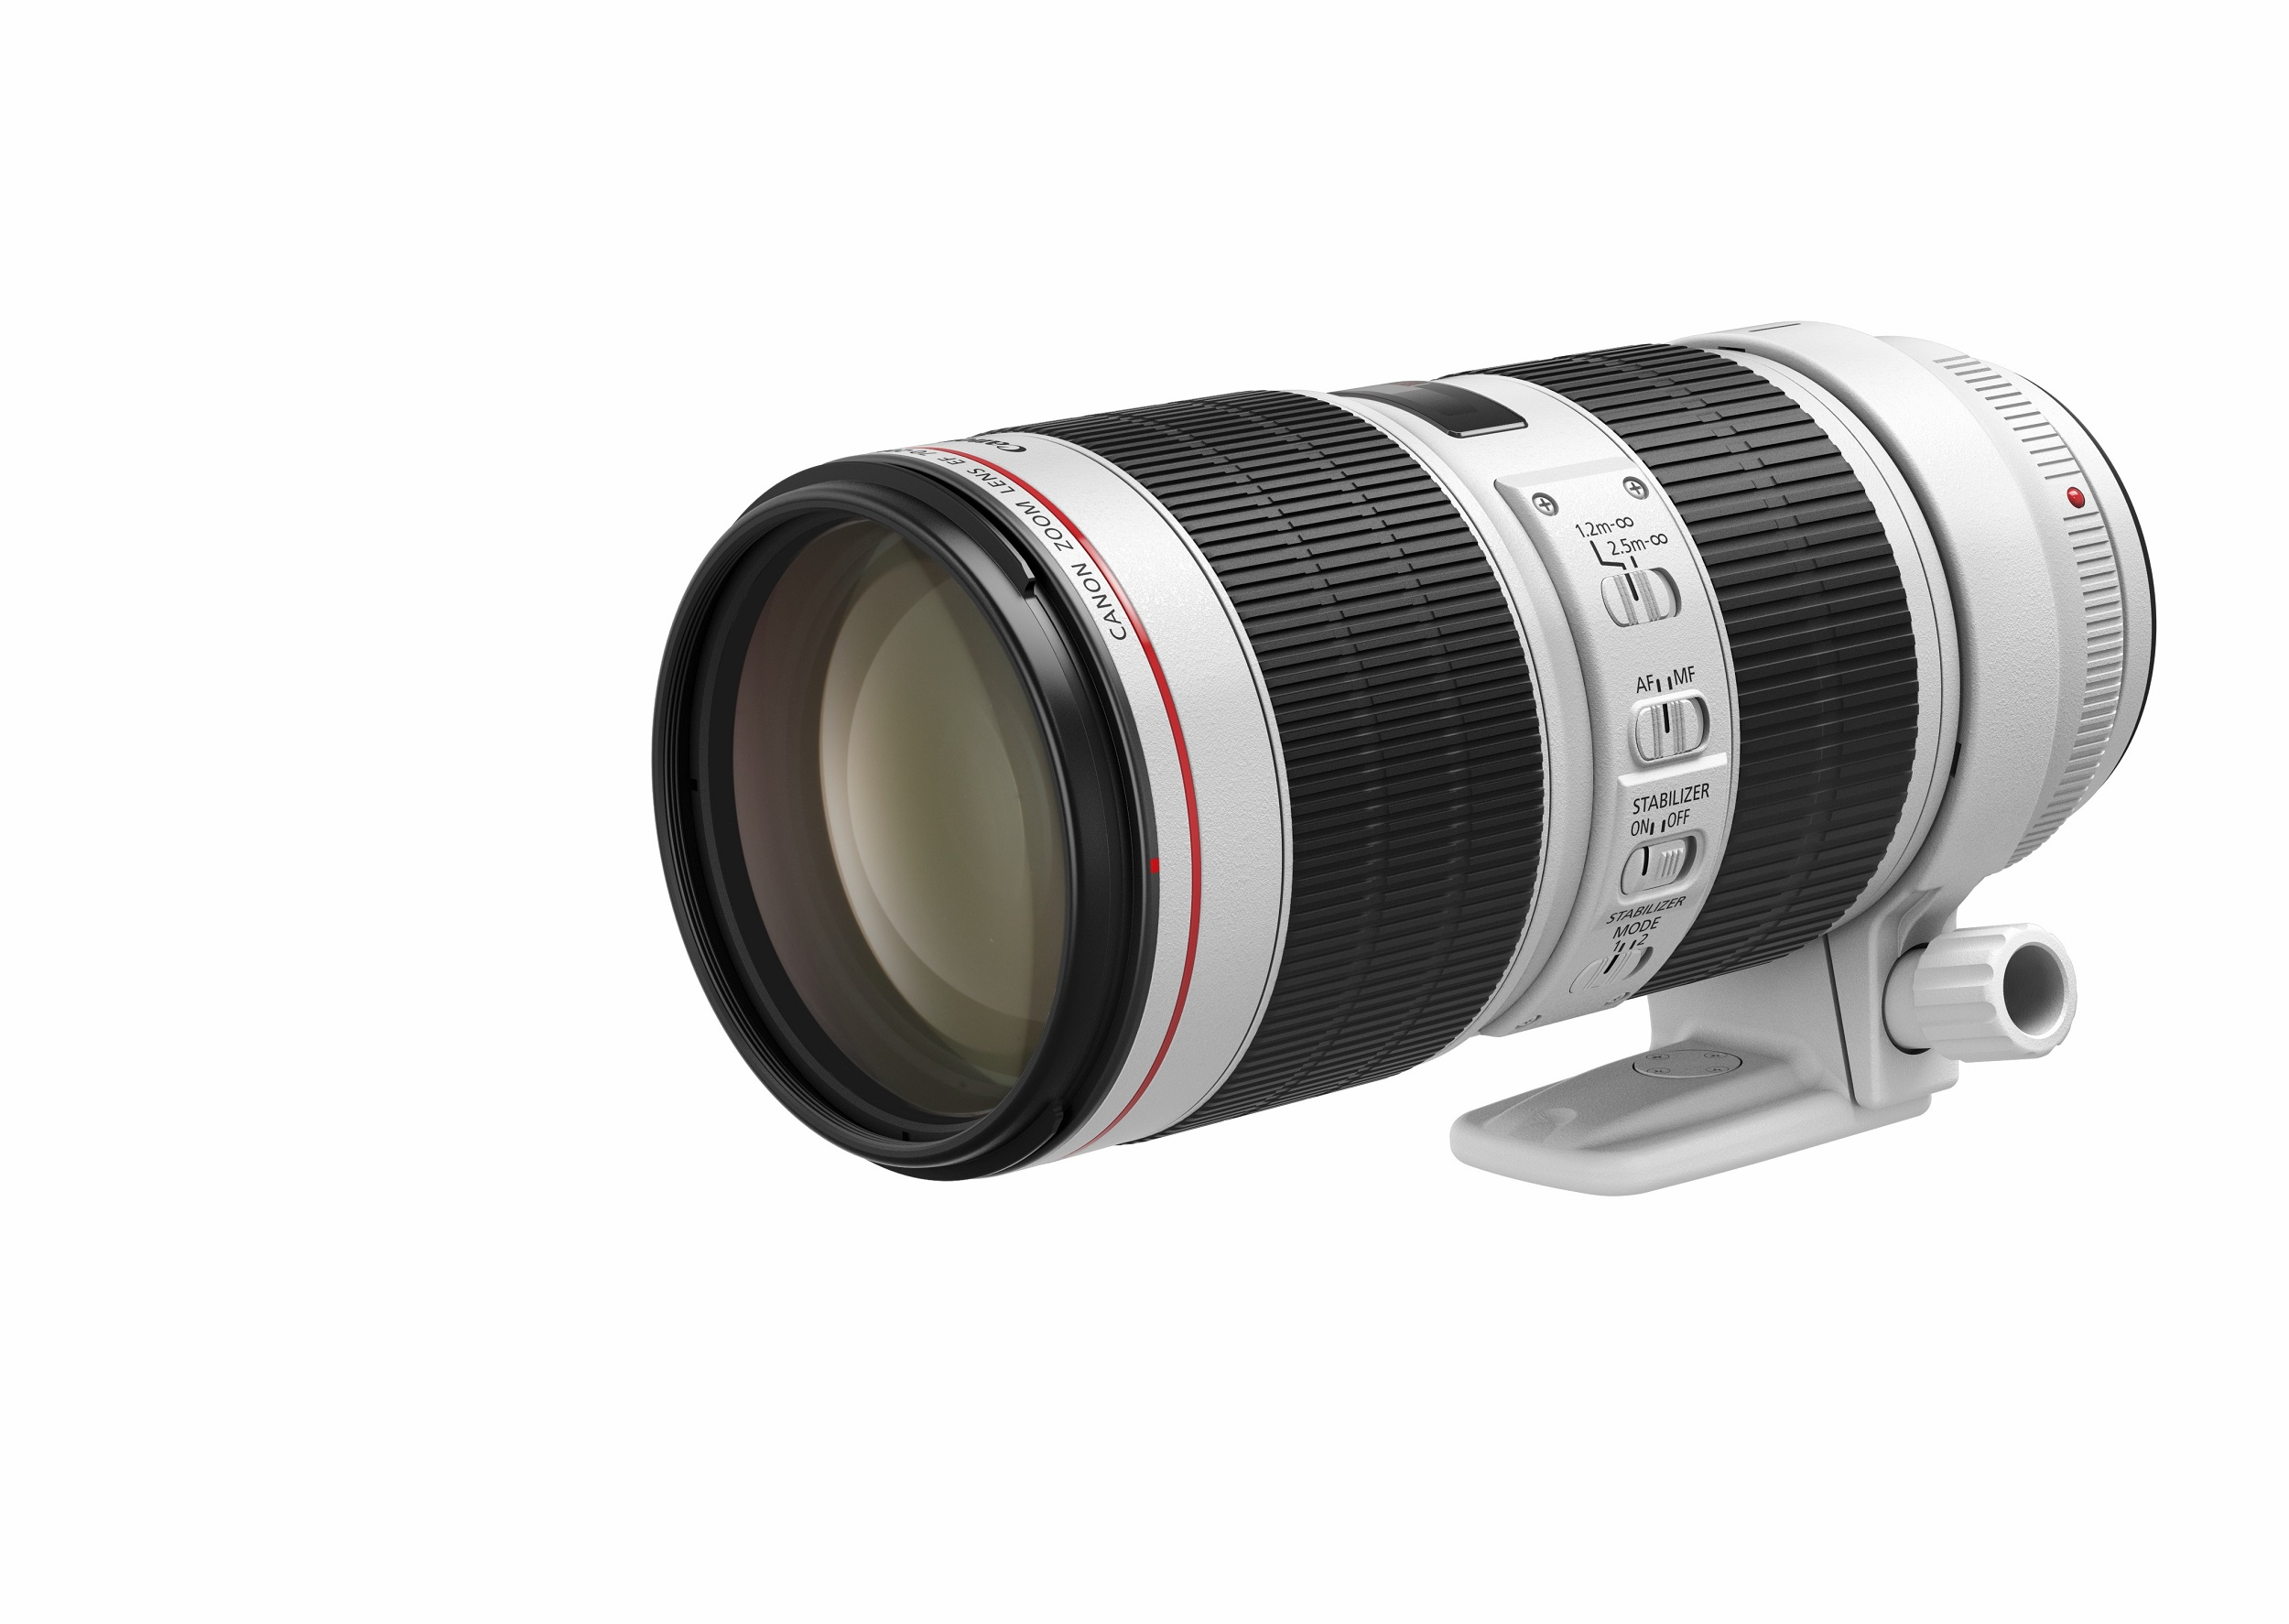 Canon Enhances Photography Experience with Next Generation EF L-Series Telephoto Zoom Lenses